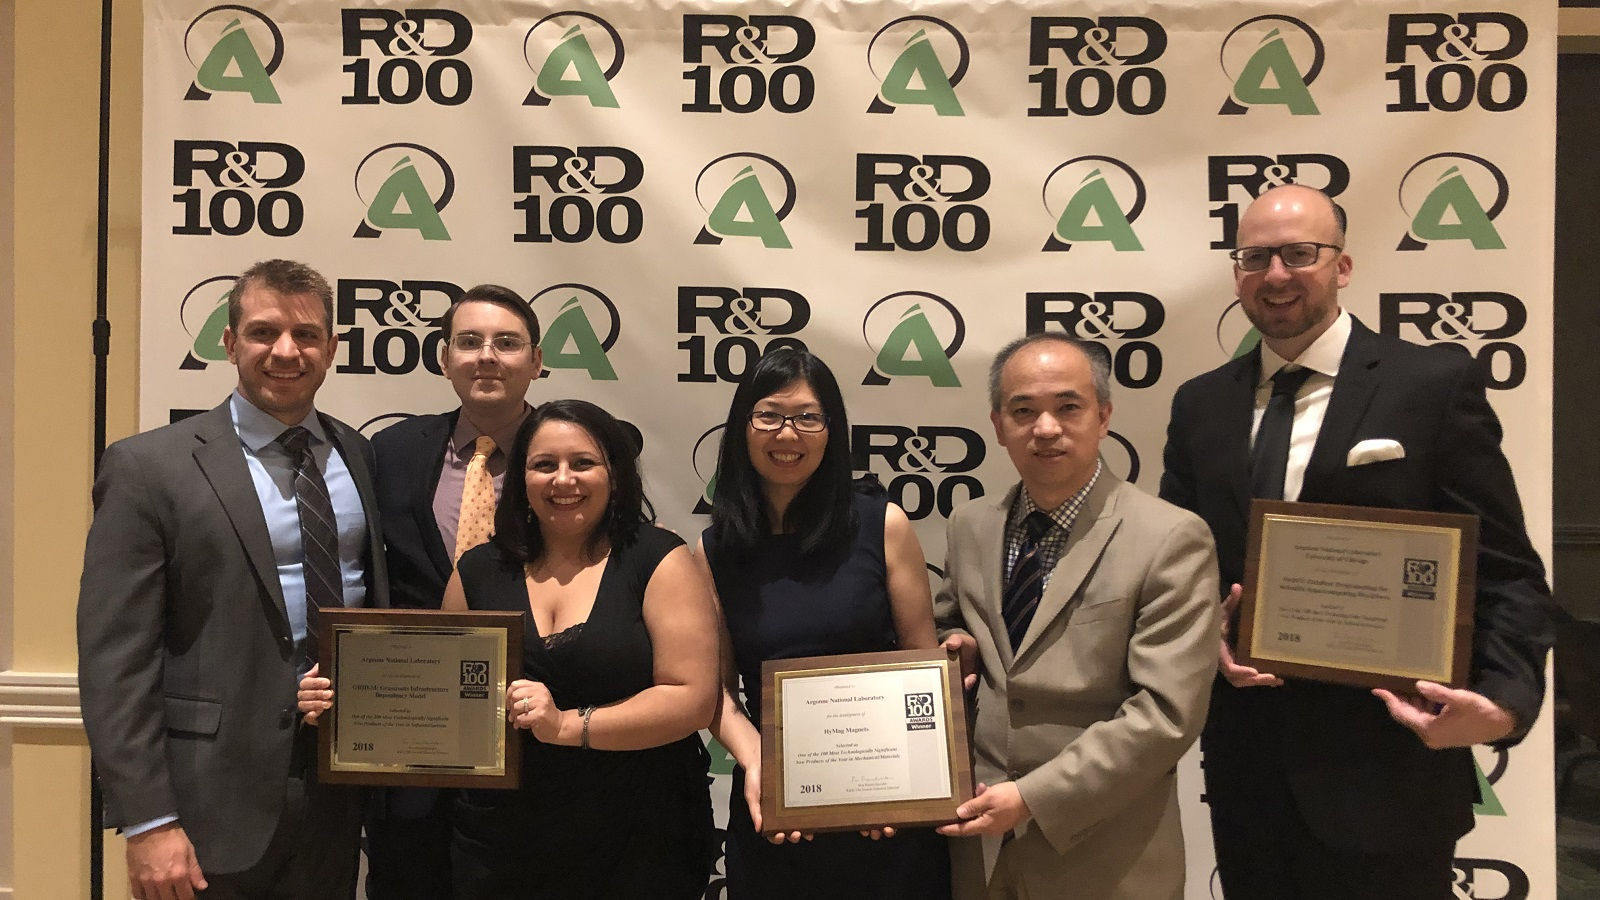 Six 2018 R&D 100 award winners